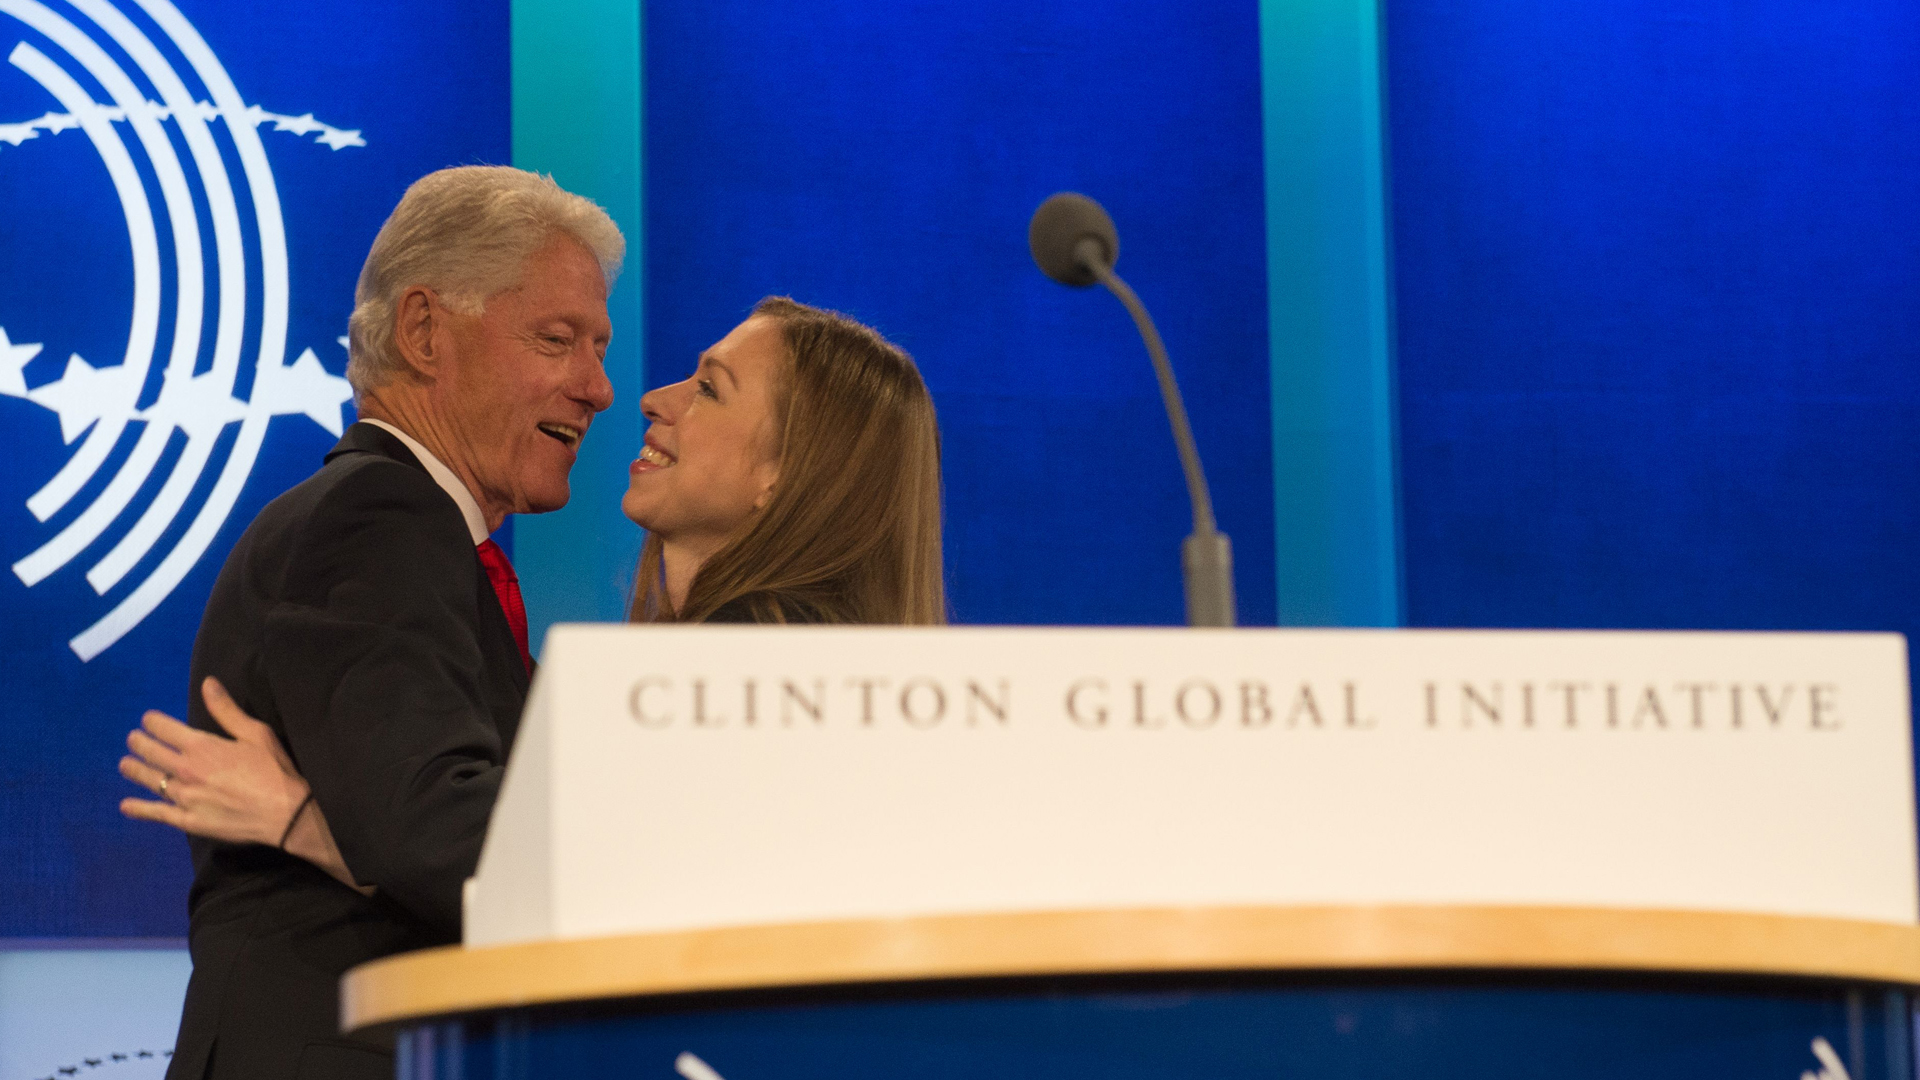 """Former President and Founding Chairman of the Clinton Global Initiative Bill Clinton, embraces Clinton Foundation Vice Chair and his daughter, Chelsea Clinton, at the closing Plenary Session: """"Imagine All The People"""" at the Clinton Global Initiative, on Sept., 21, 2016, in New York. (Credit: Bryan R. Smith /AFP/Getty Images)"""